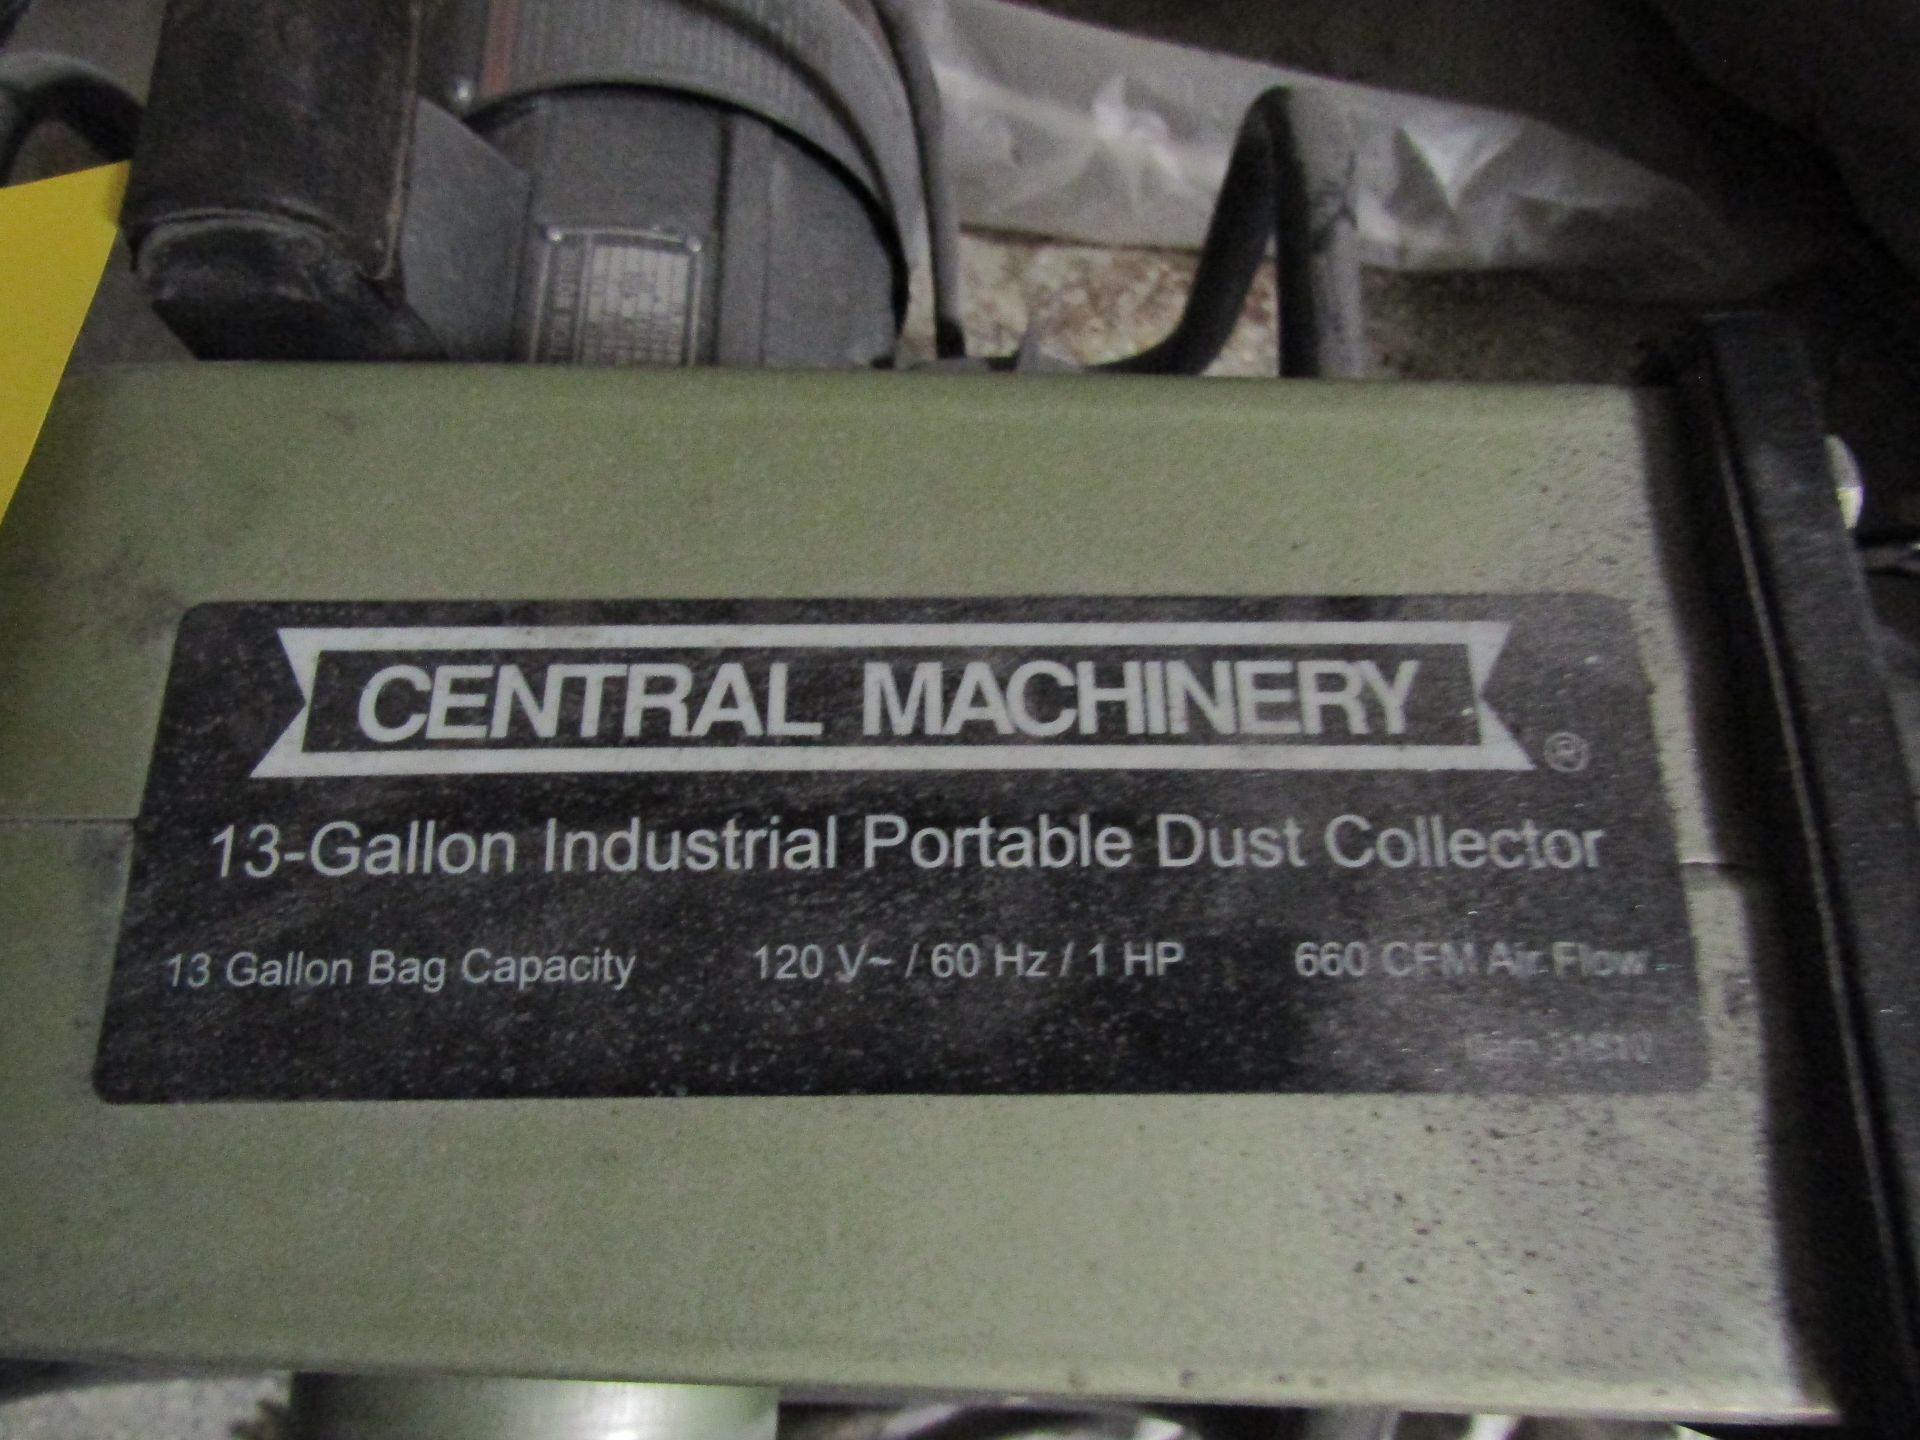 Lot 48 - CENTRAL MACHINERY 13-Gallon Industrial Portable Dust Collector